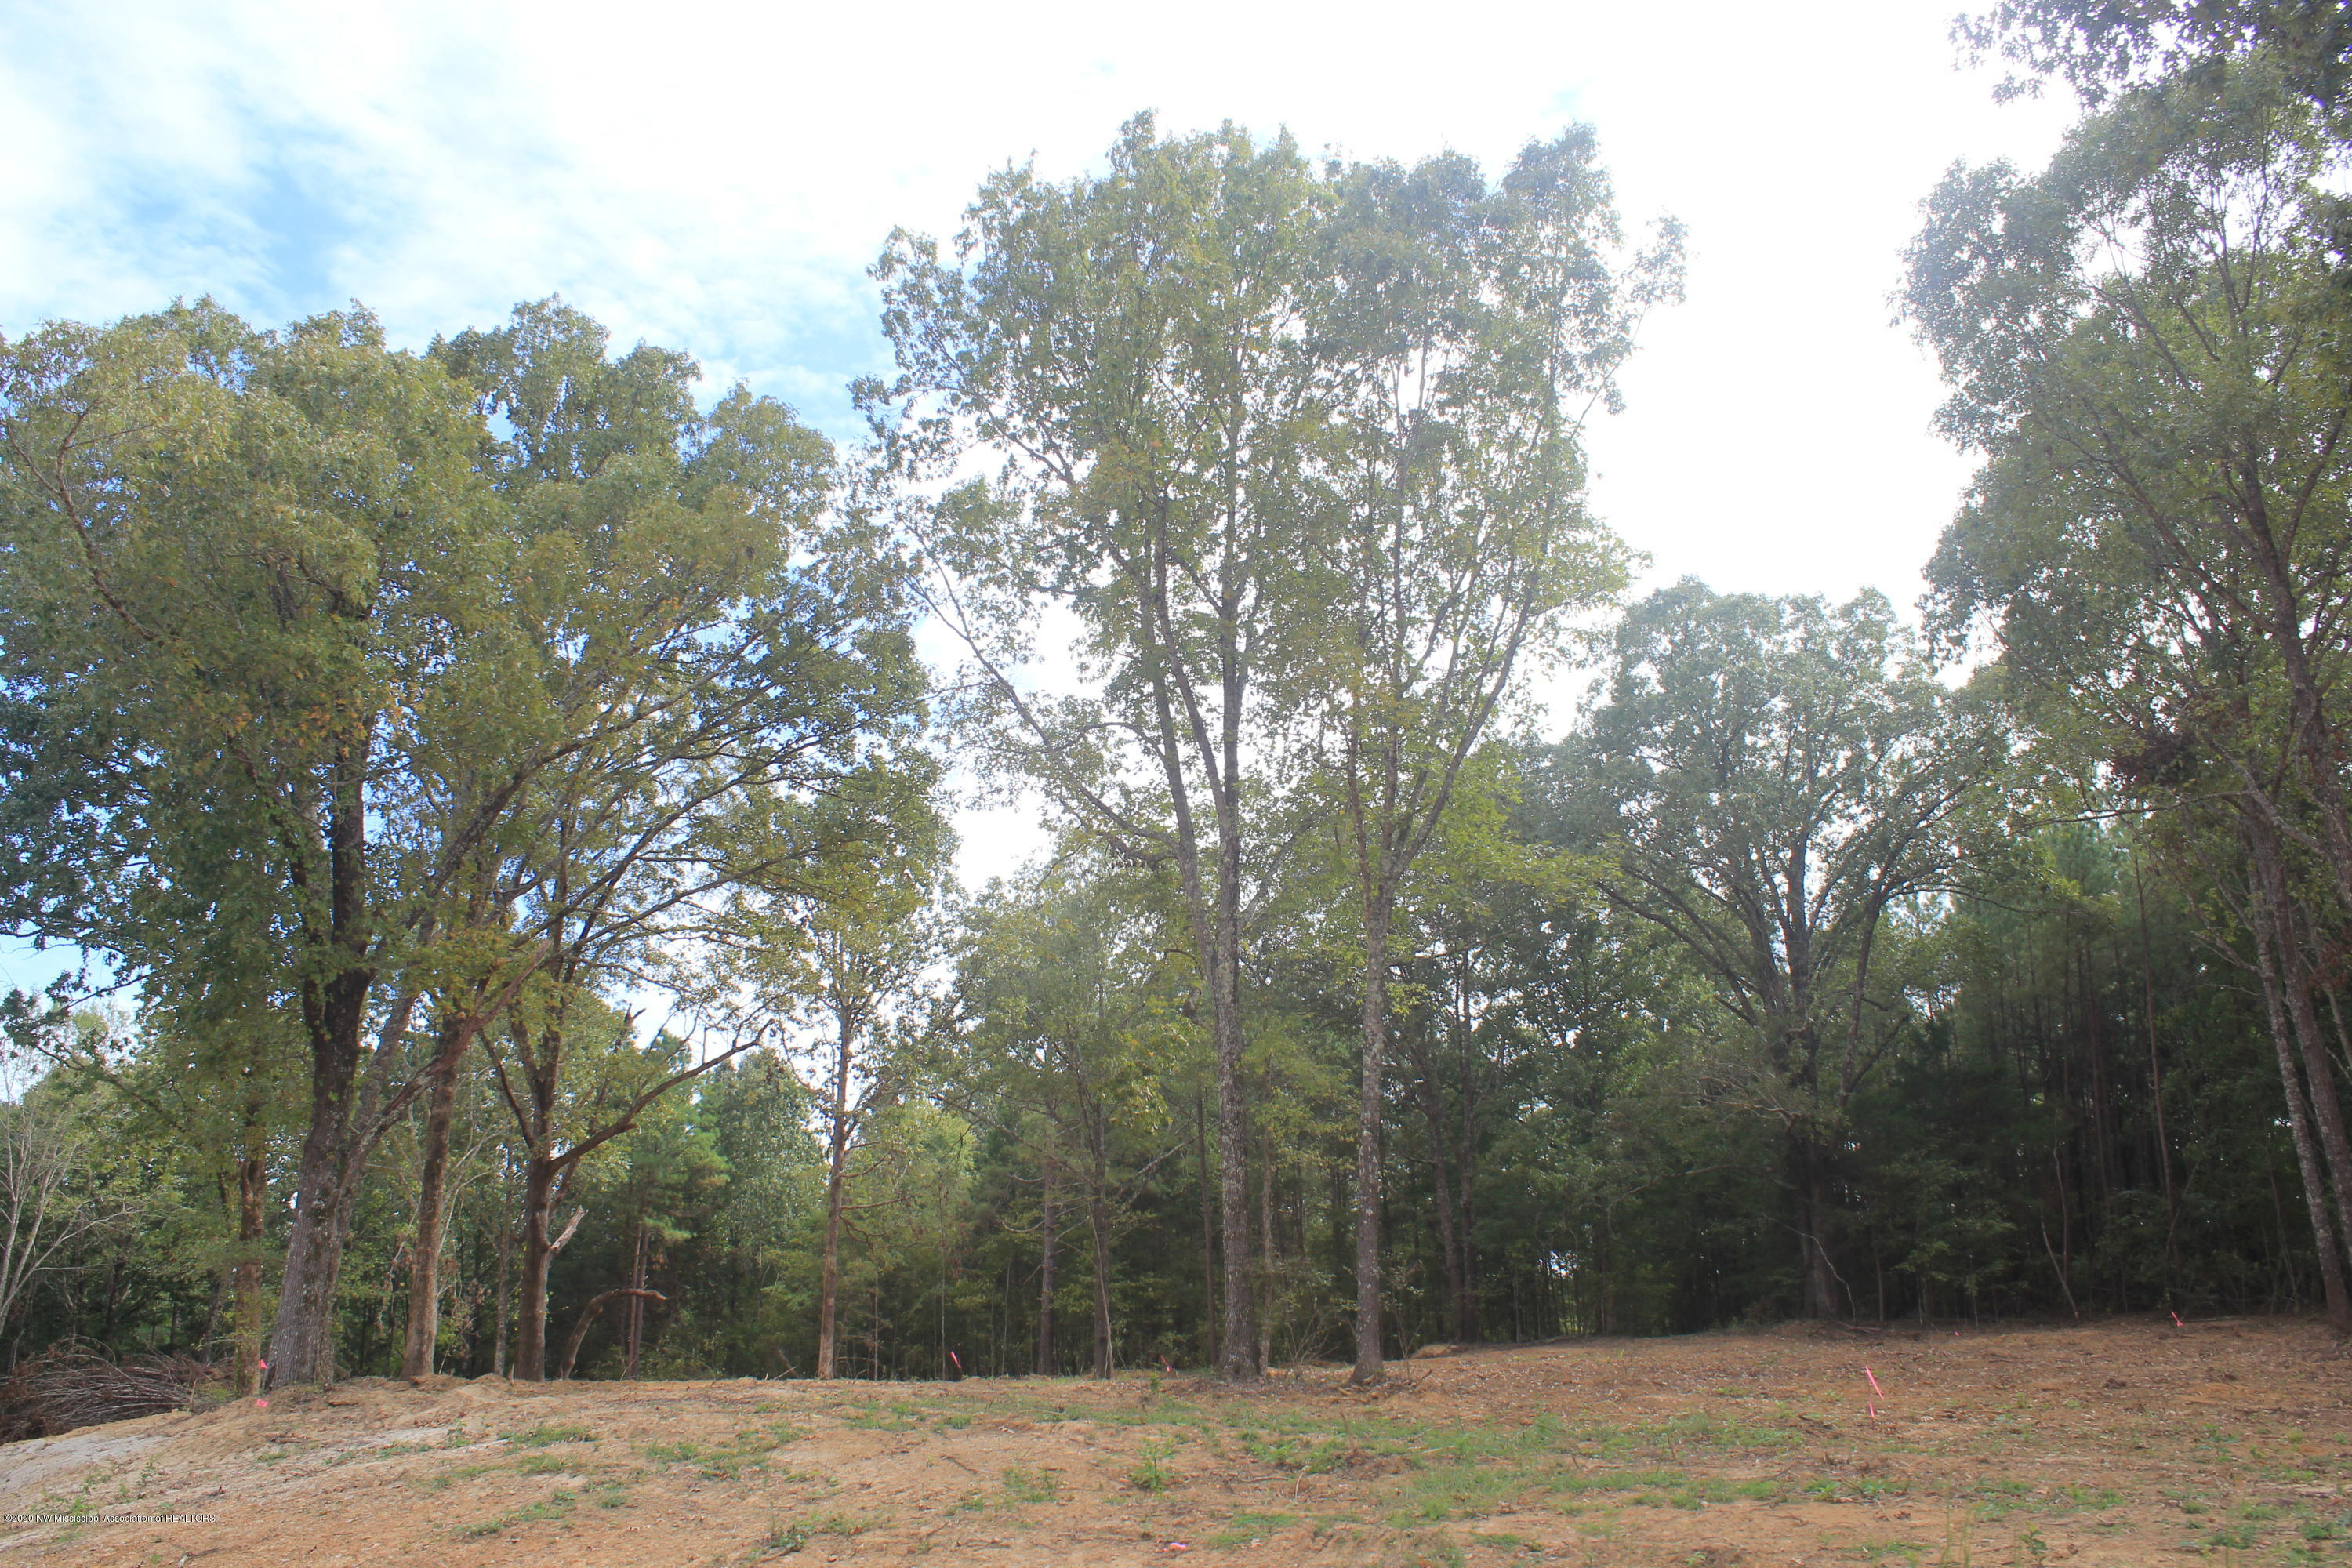 53 Hayward Drive, Marshall, Mississippi 38611, ,Land,For Sale,Hayward,331661